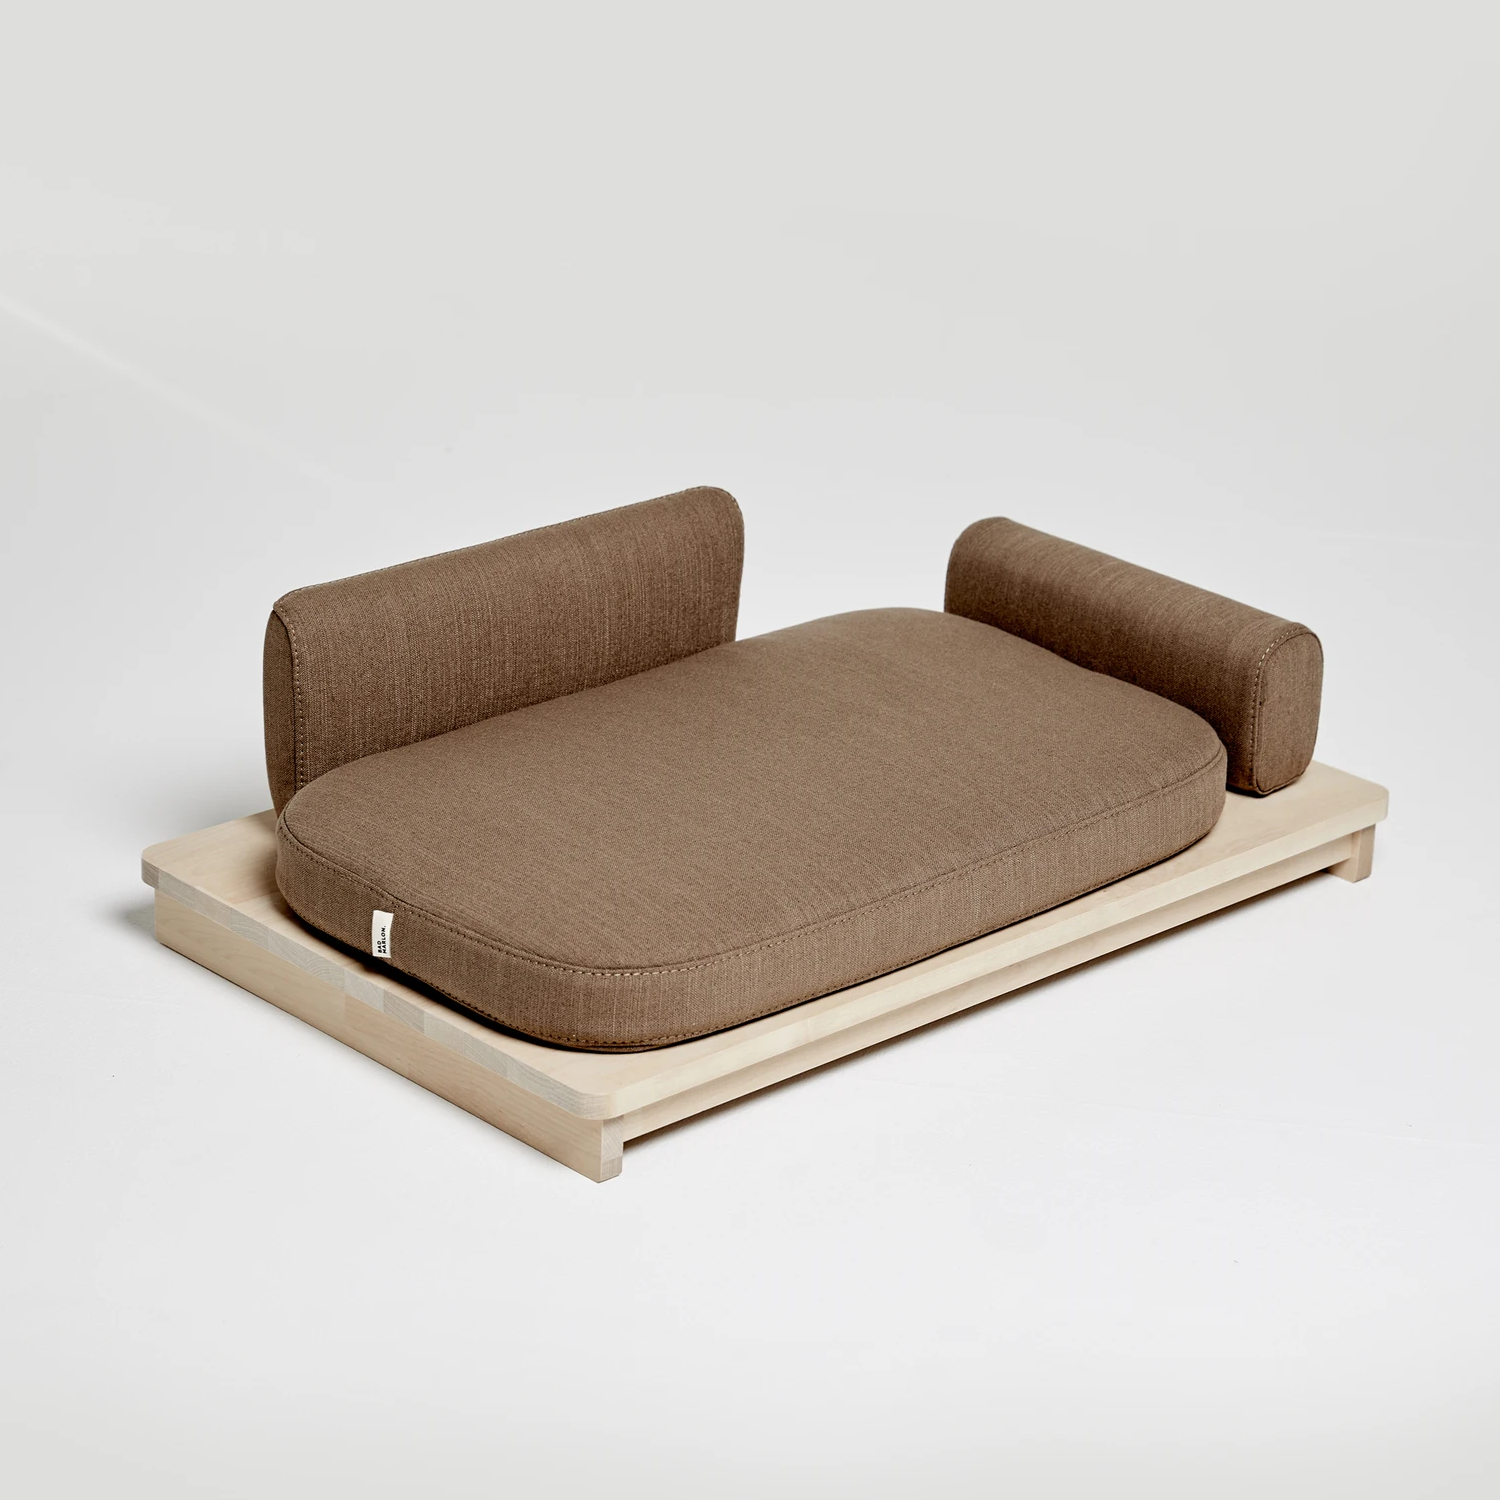 Linden Day Dog Bed: Brown